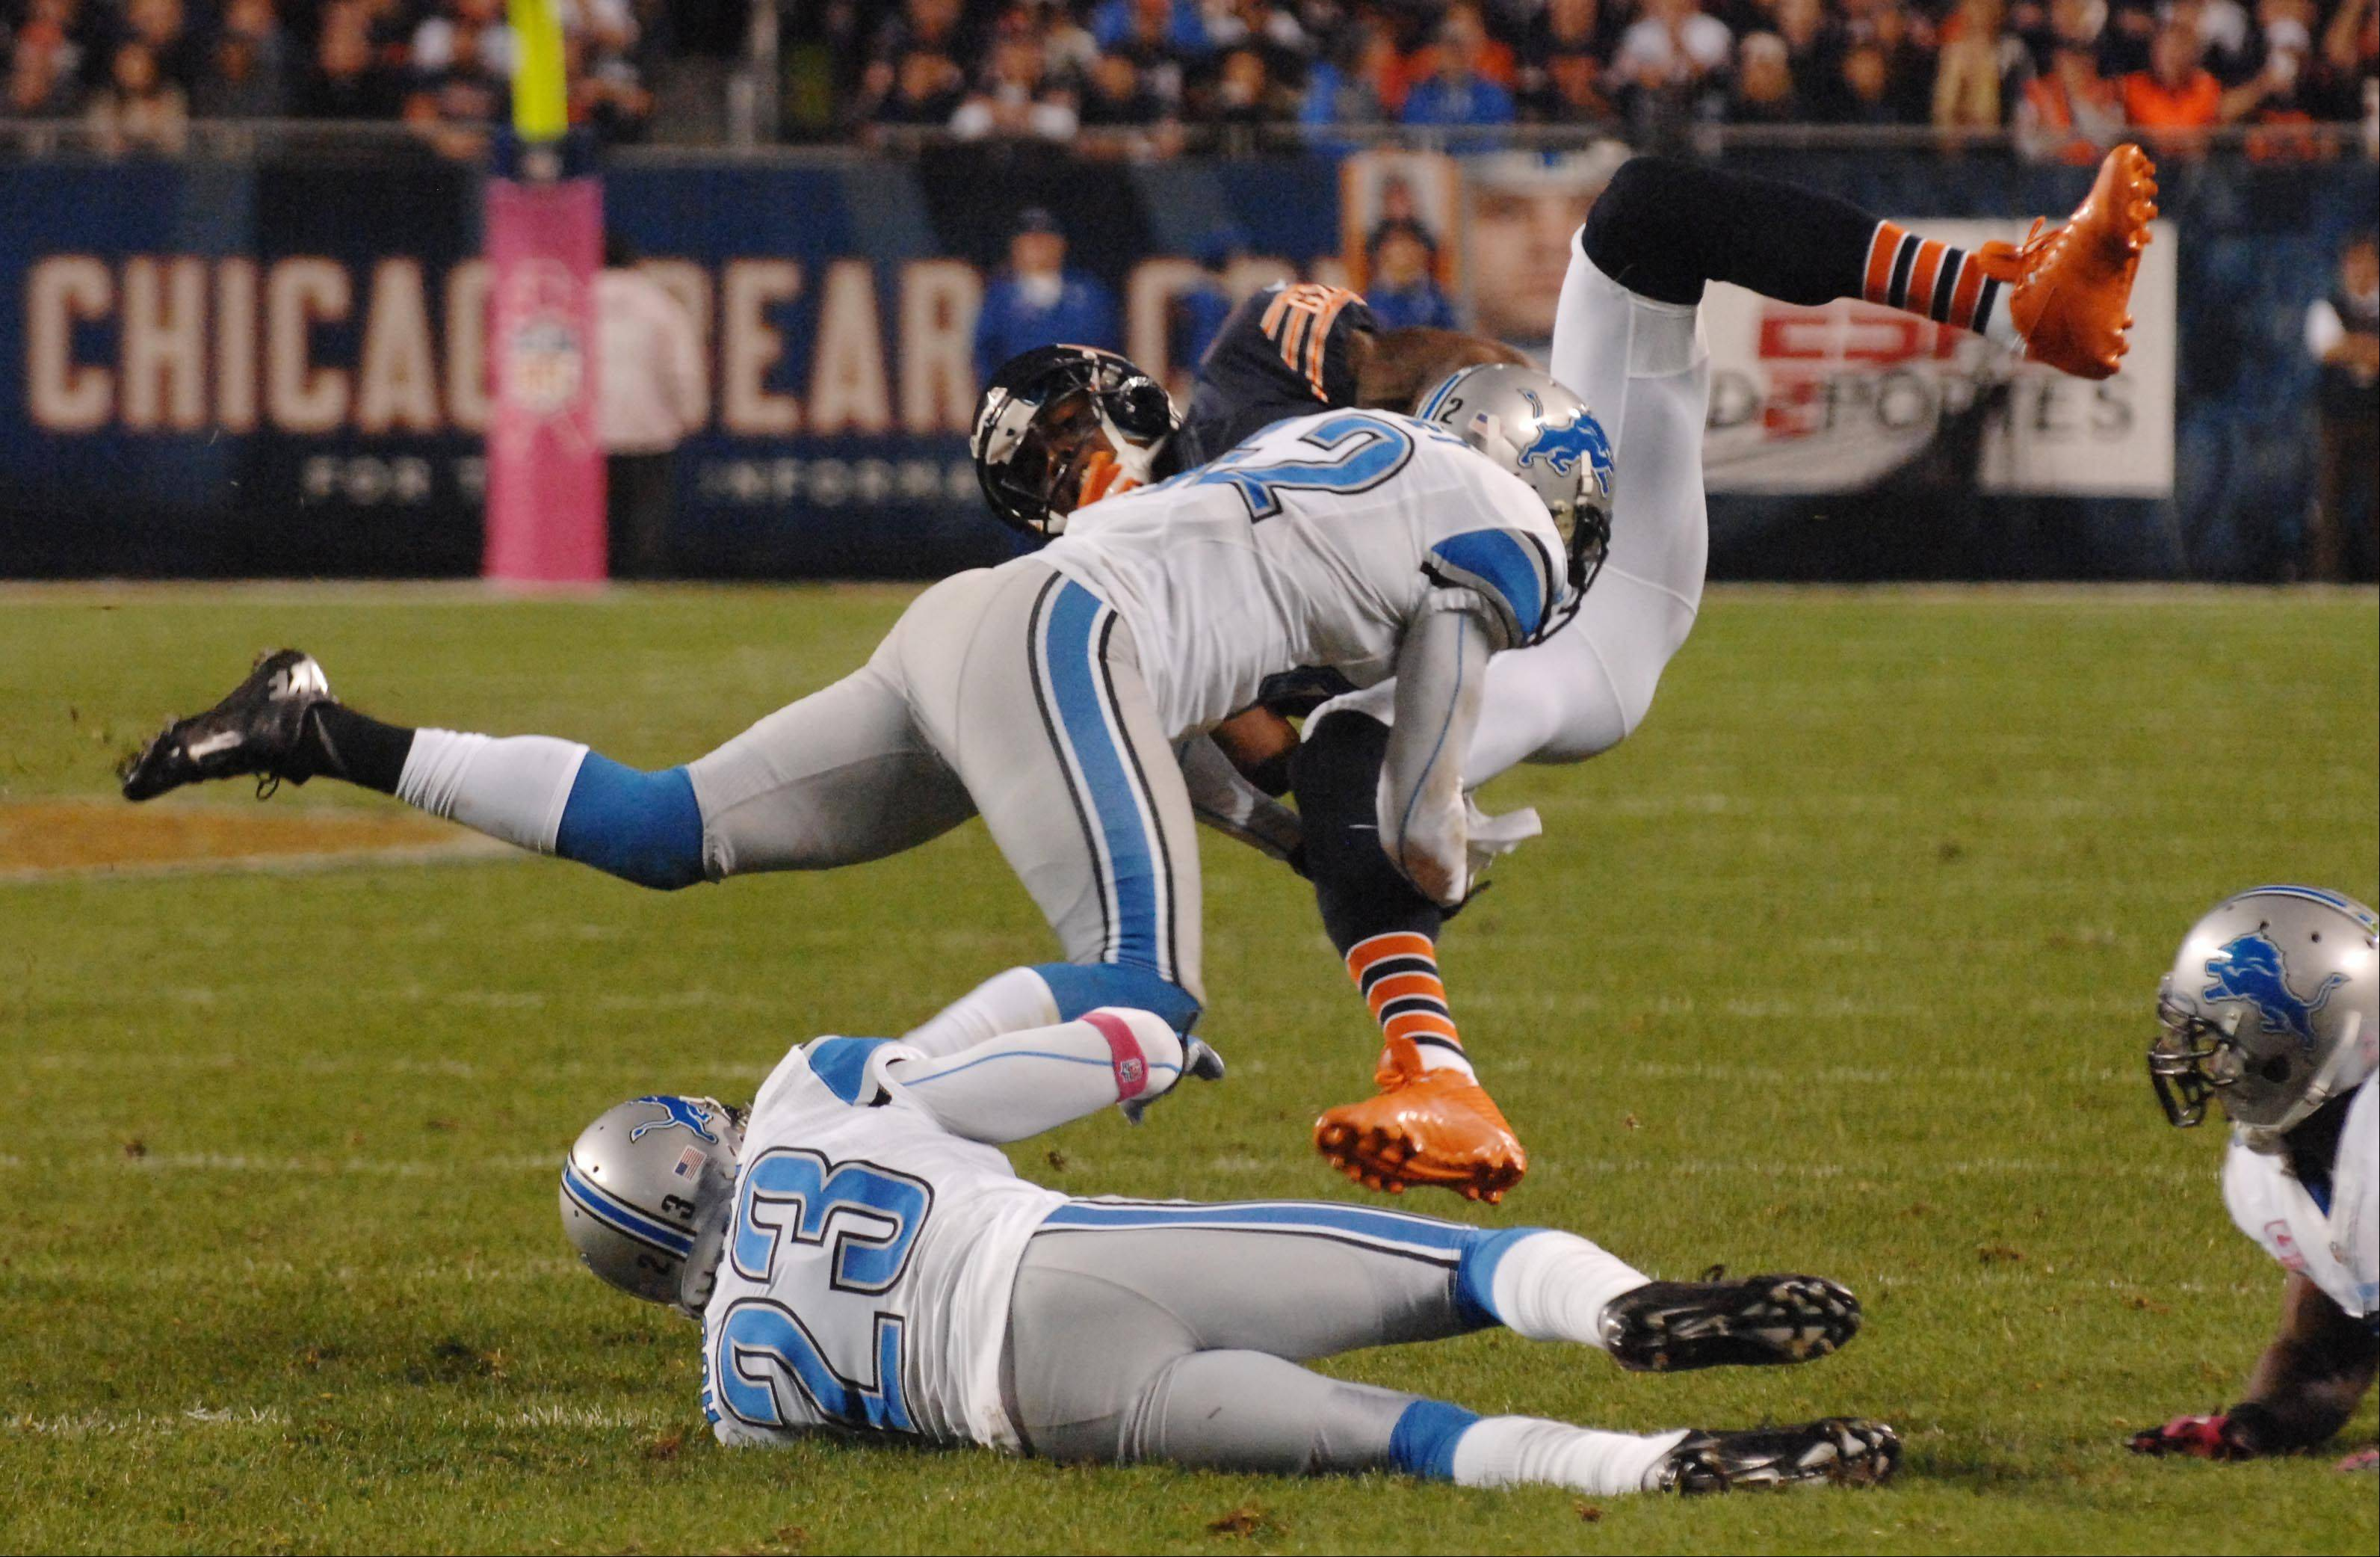 Chicago Bears wide receiver Brandon Marshall is stopped by Detroit Lions outside linebacker Justin Durant and cornerback Chris Houston after an 18-yard catch for a first down.